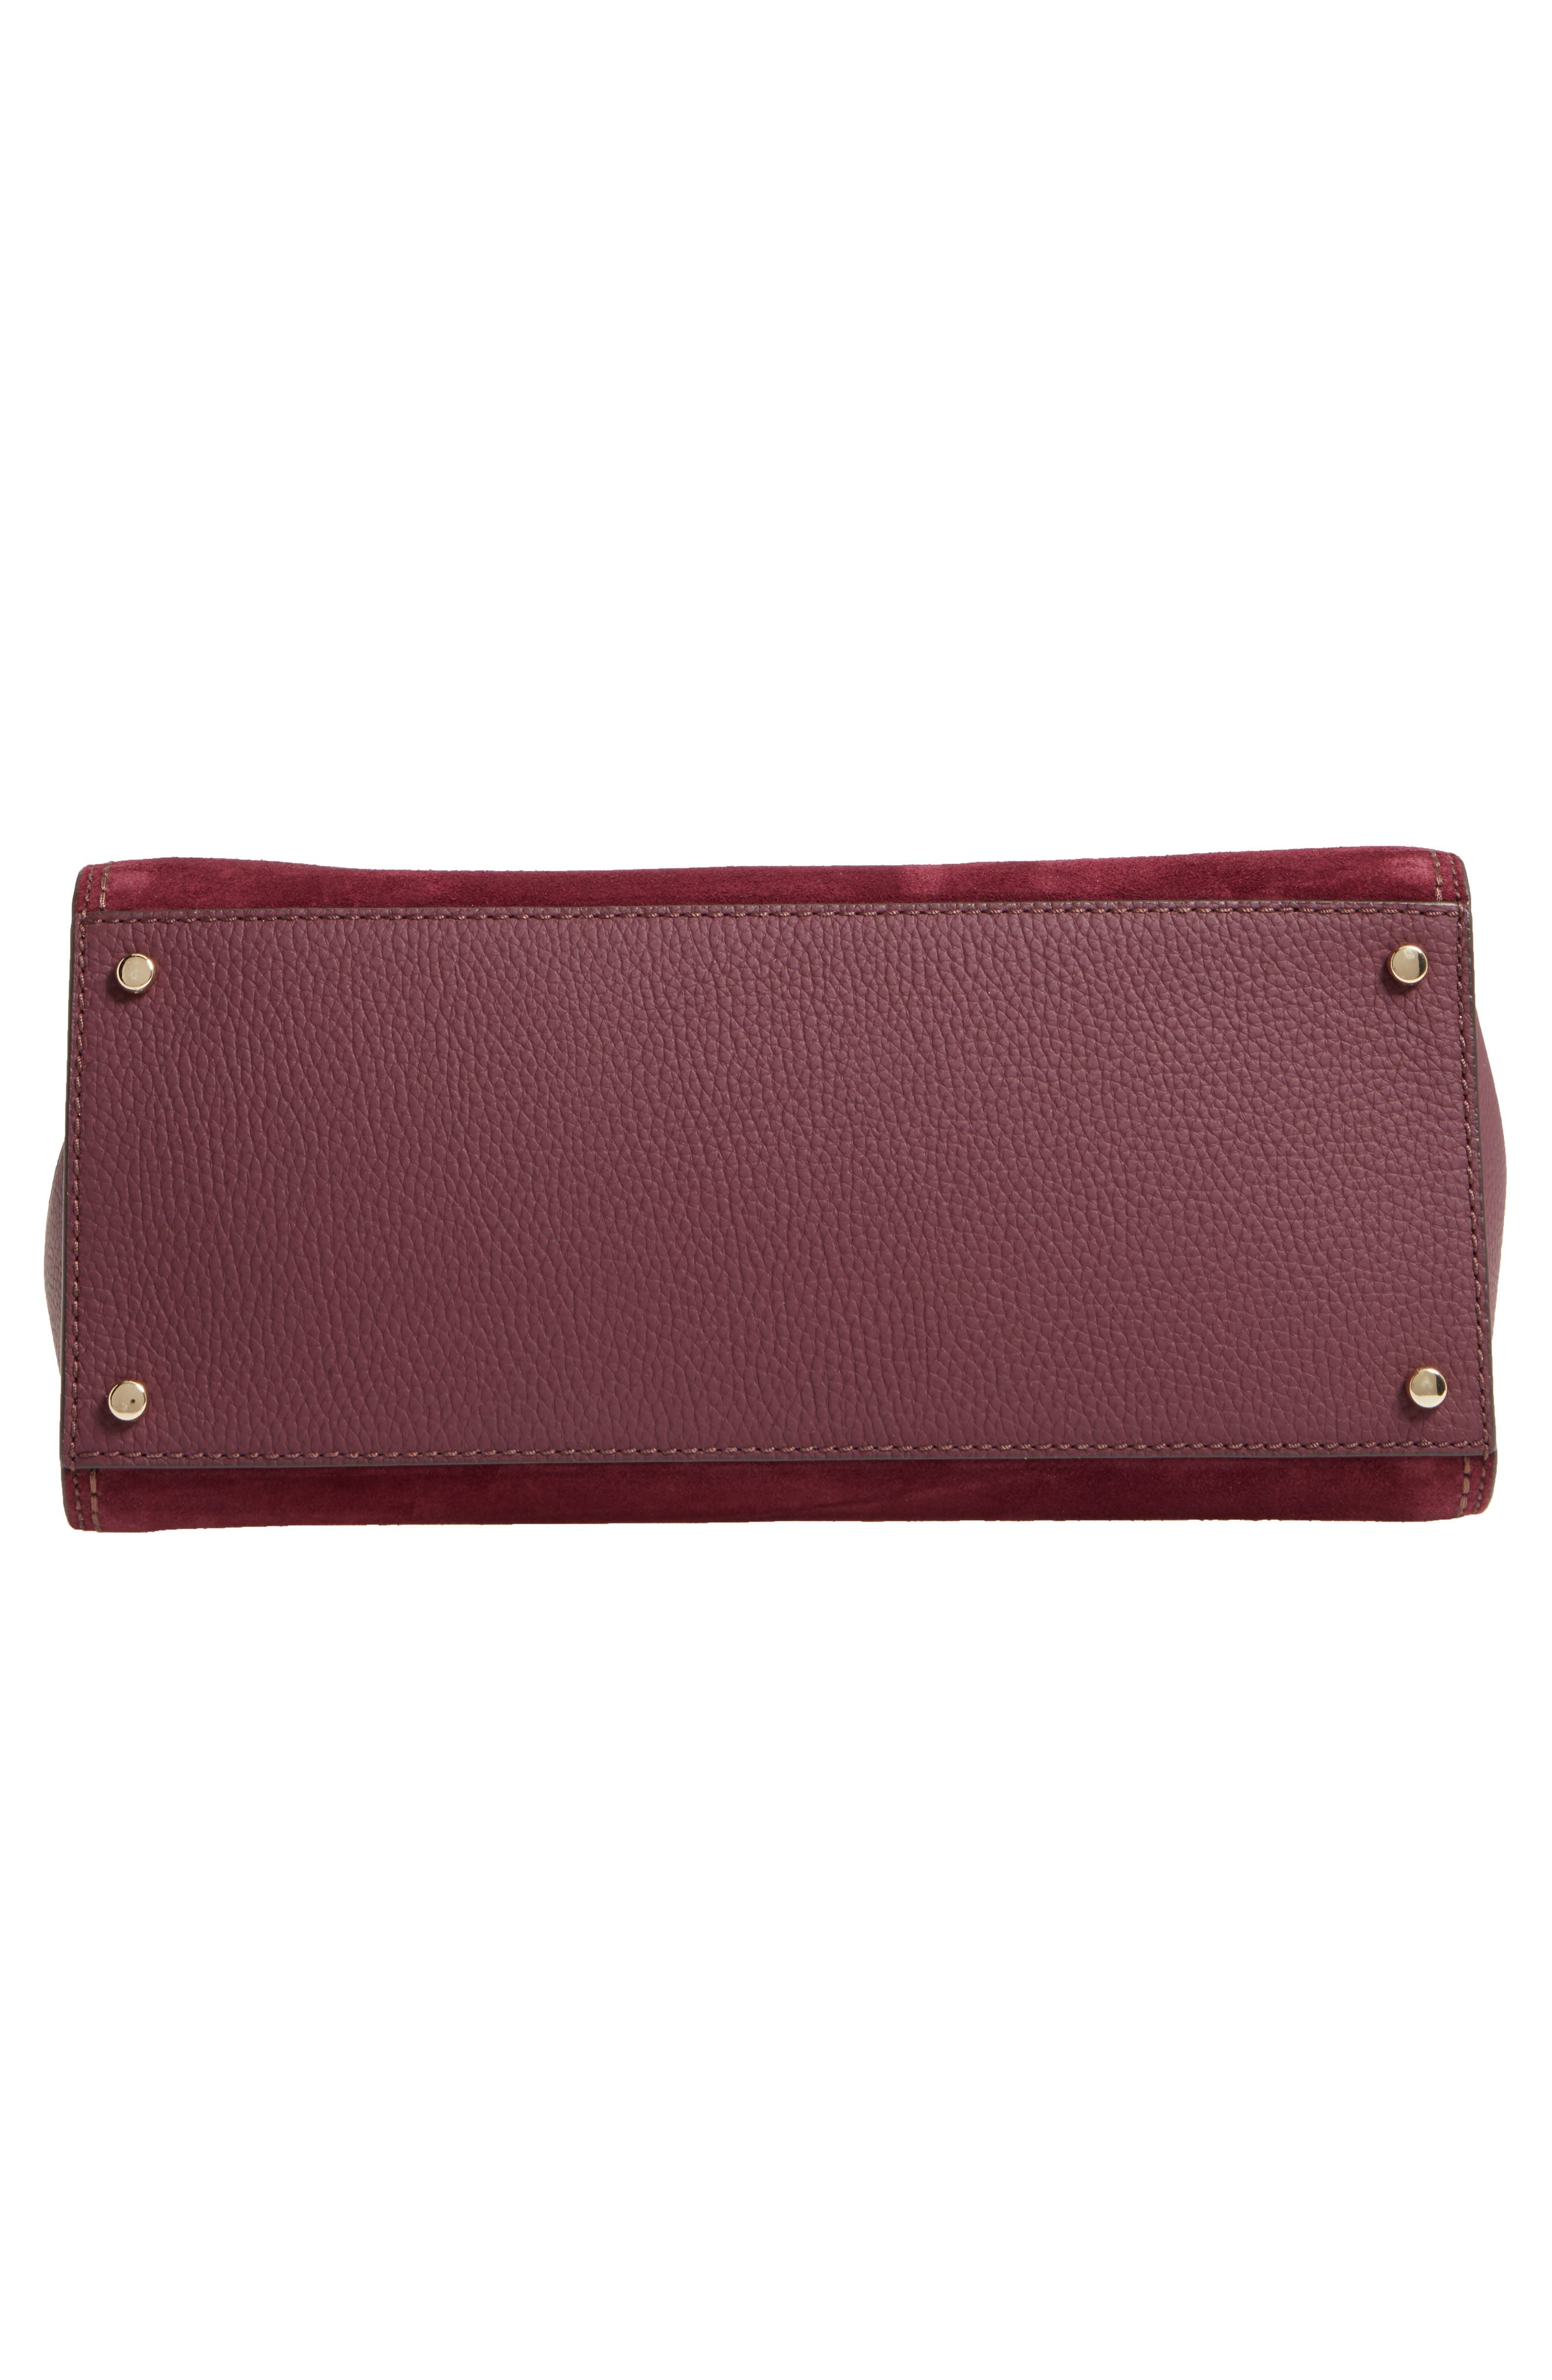 dunne lane lake suede satchel,                             Alternate thumbnail 6, color,                             Deep Wine